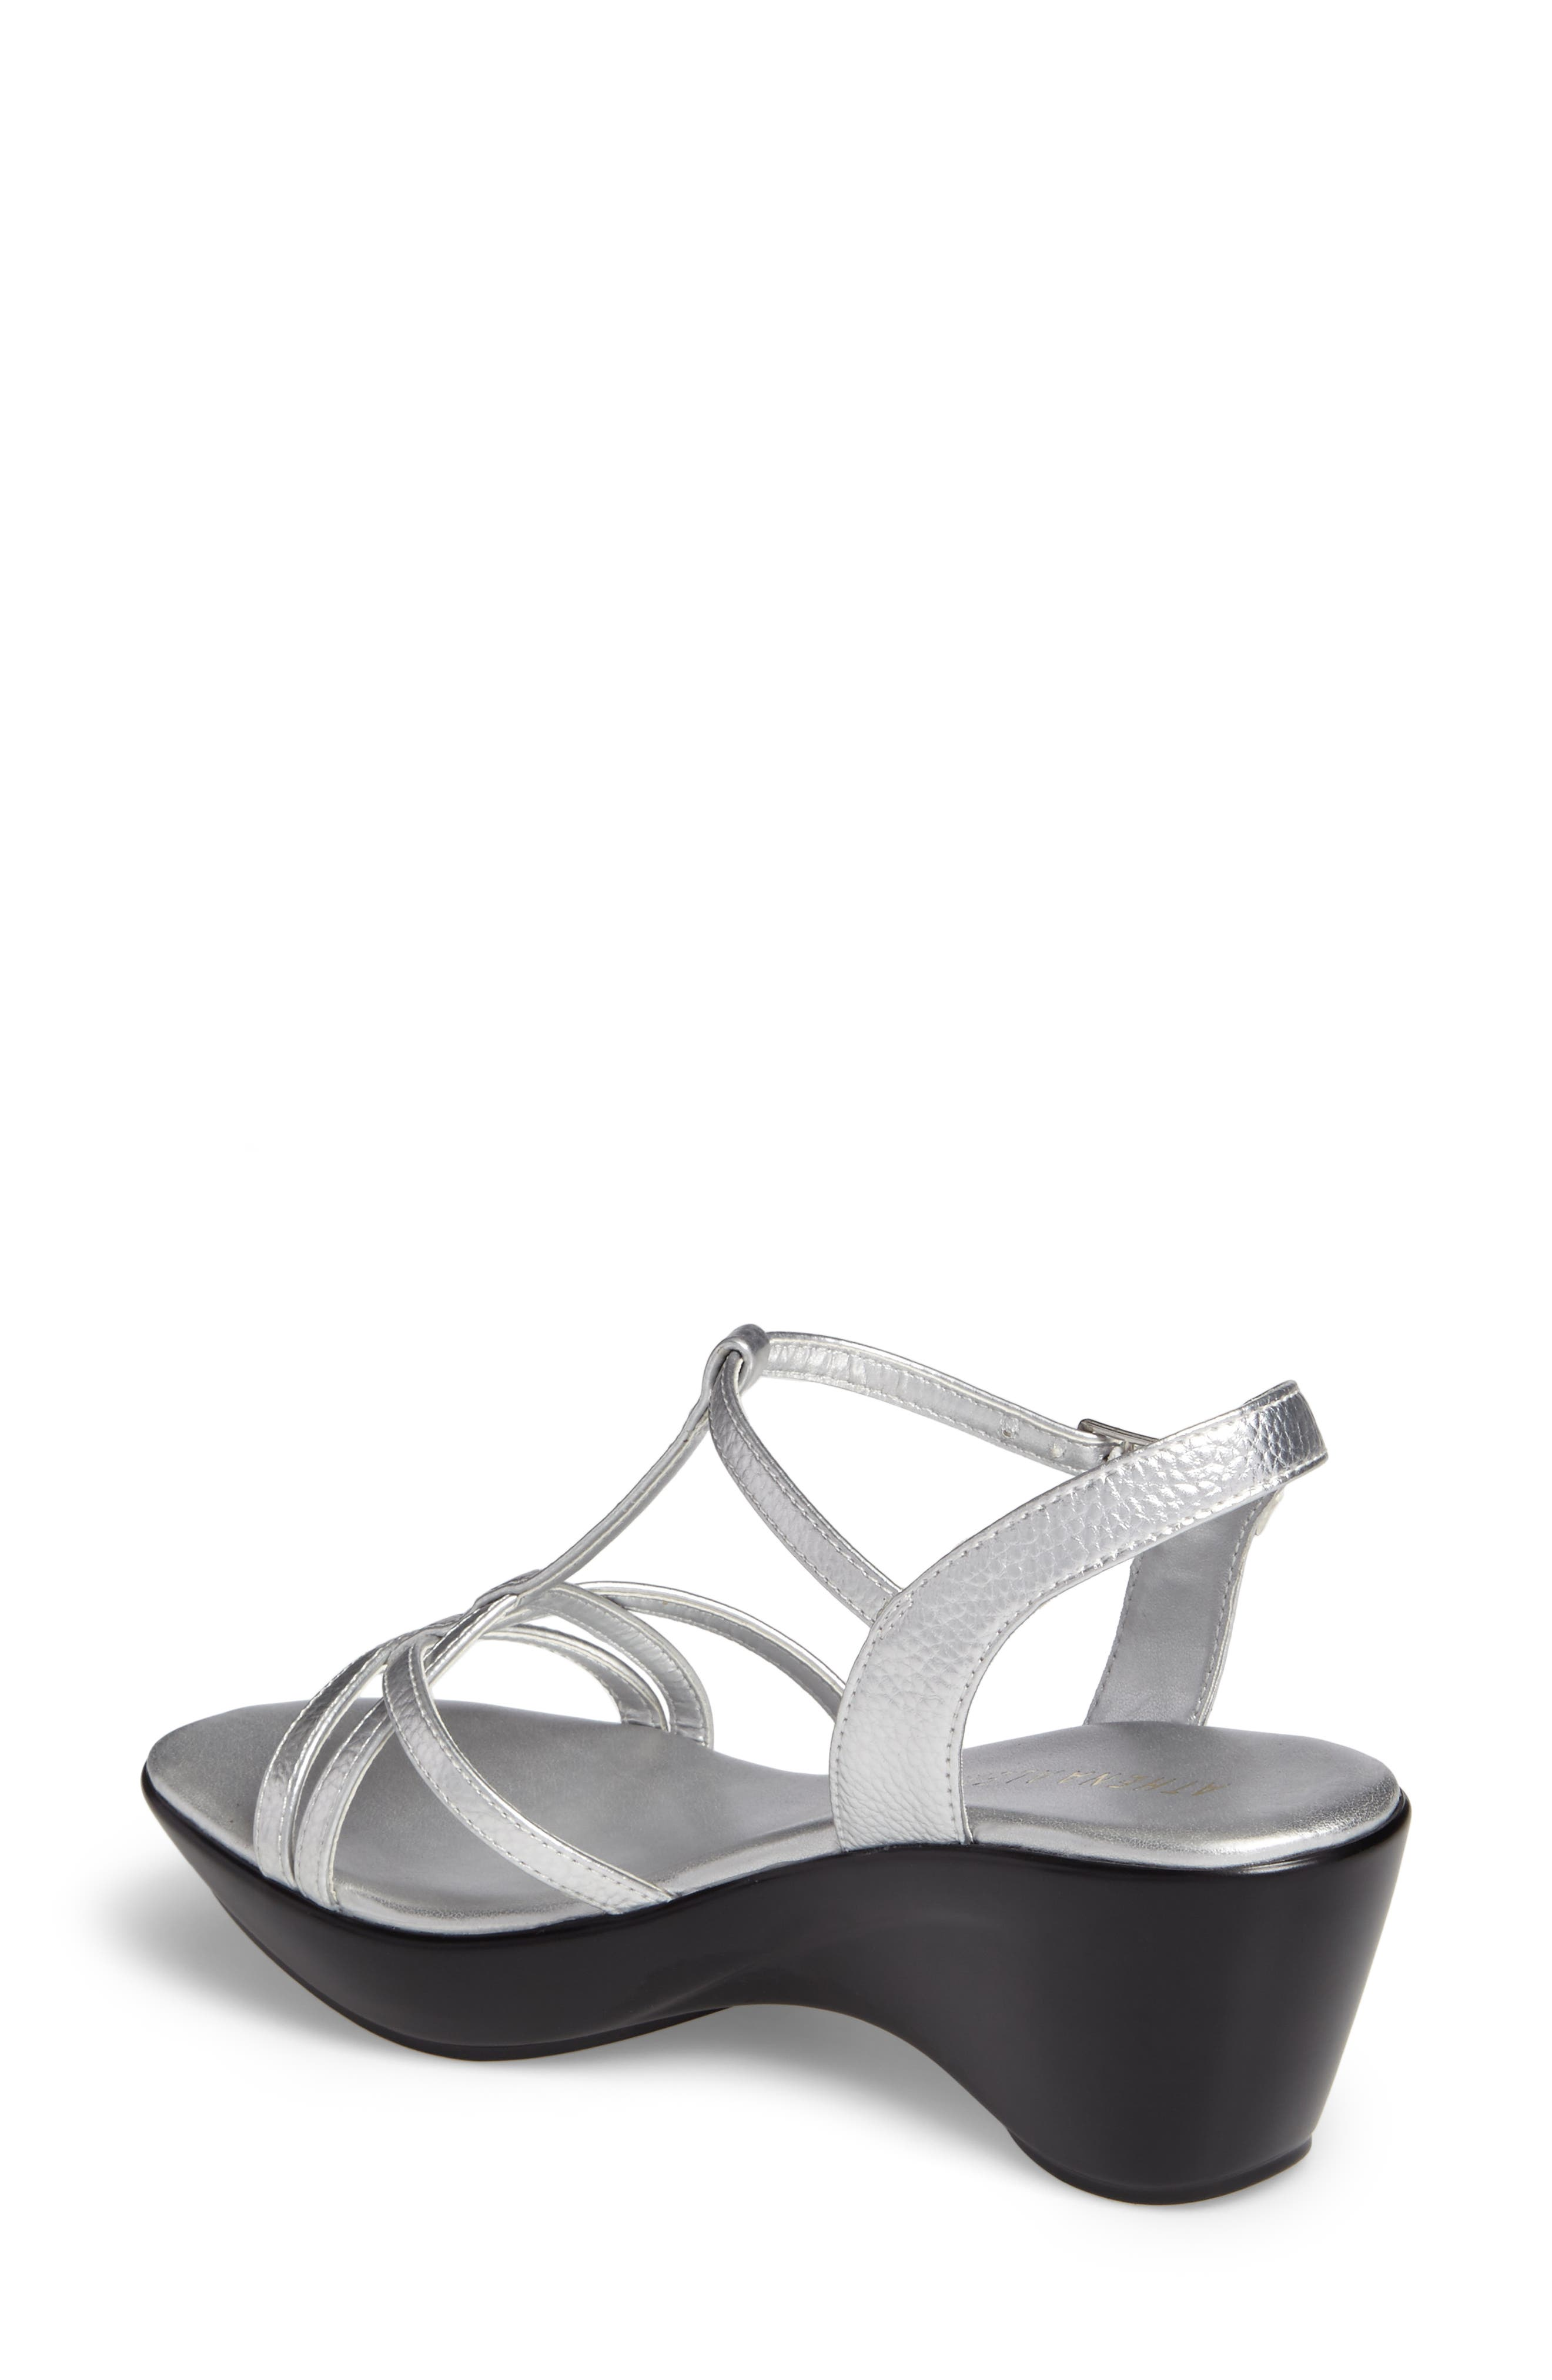 Cassort T-Strap Sandal,                             Alternate thumbnail 4, color,